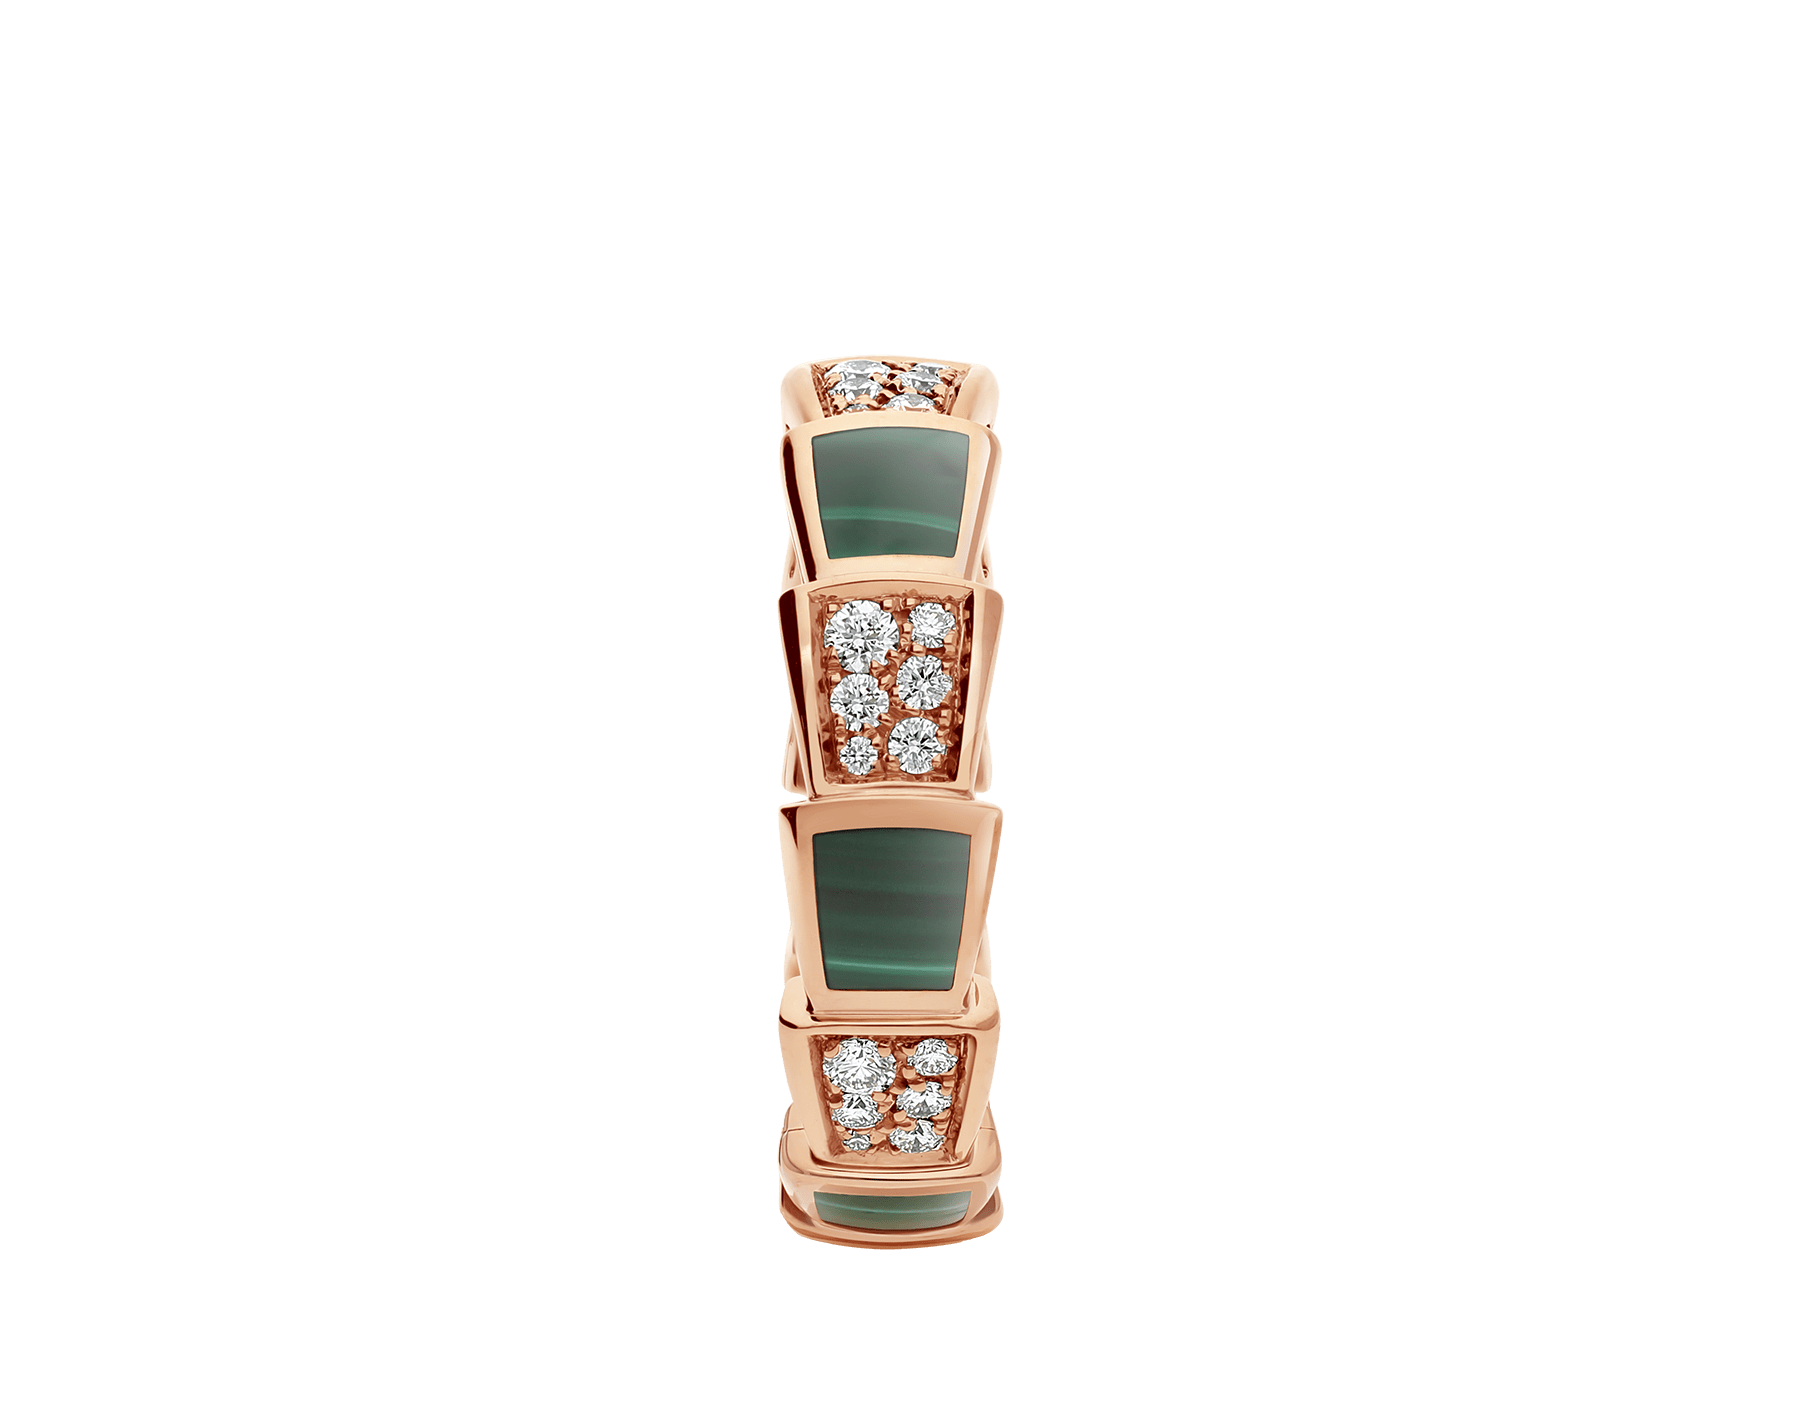 Serpenti Viper 18 kt rose gold ring set with malachite elements and pavé diamonds AN858203 image 2